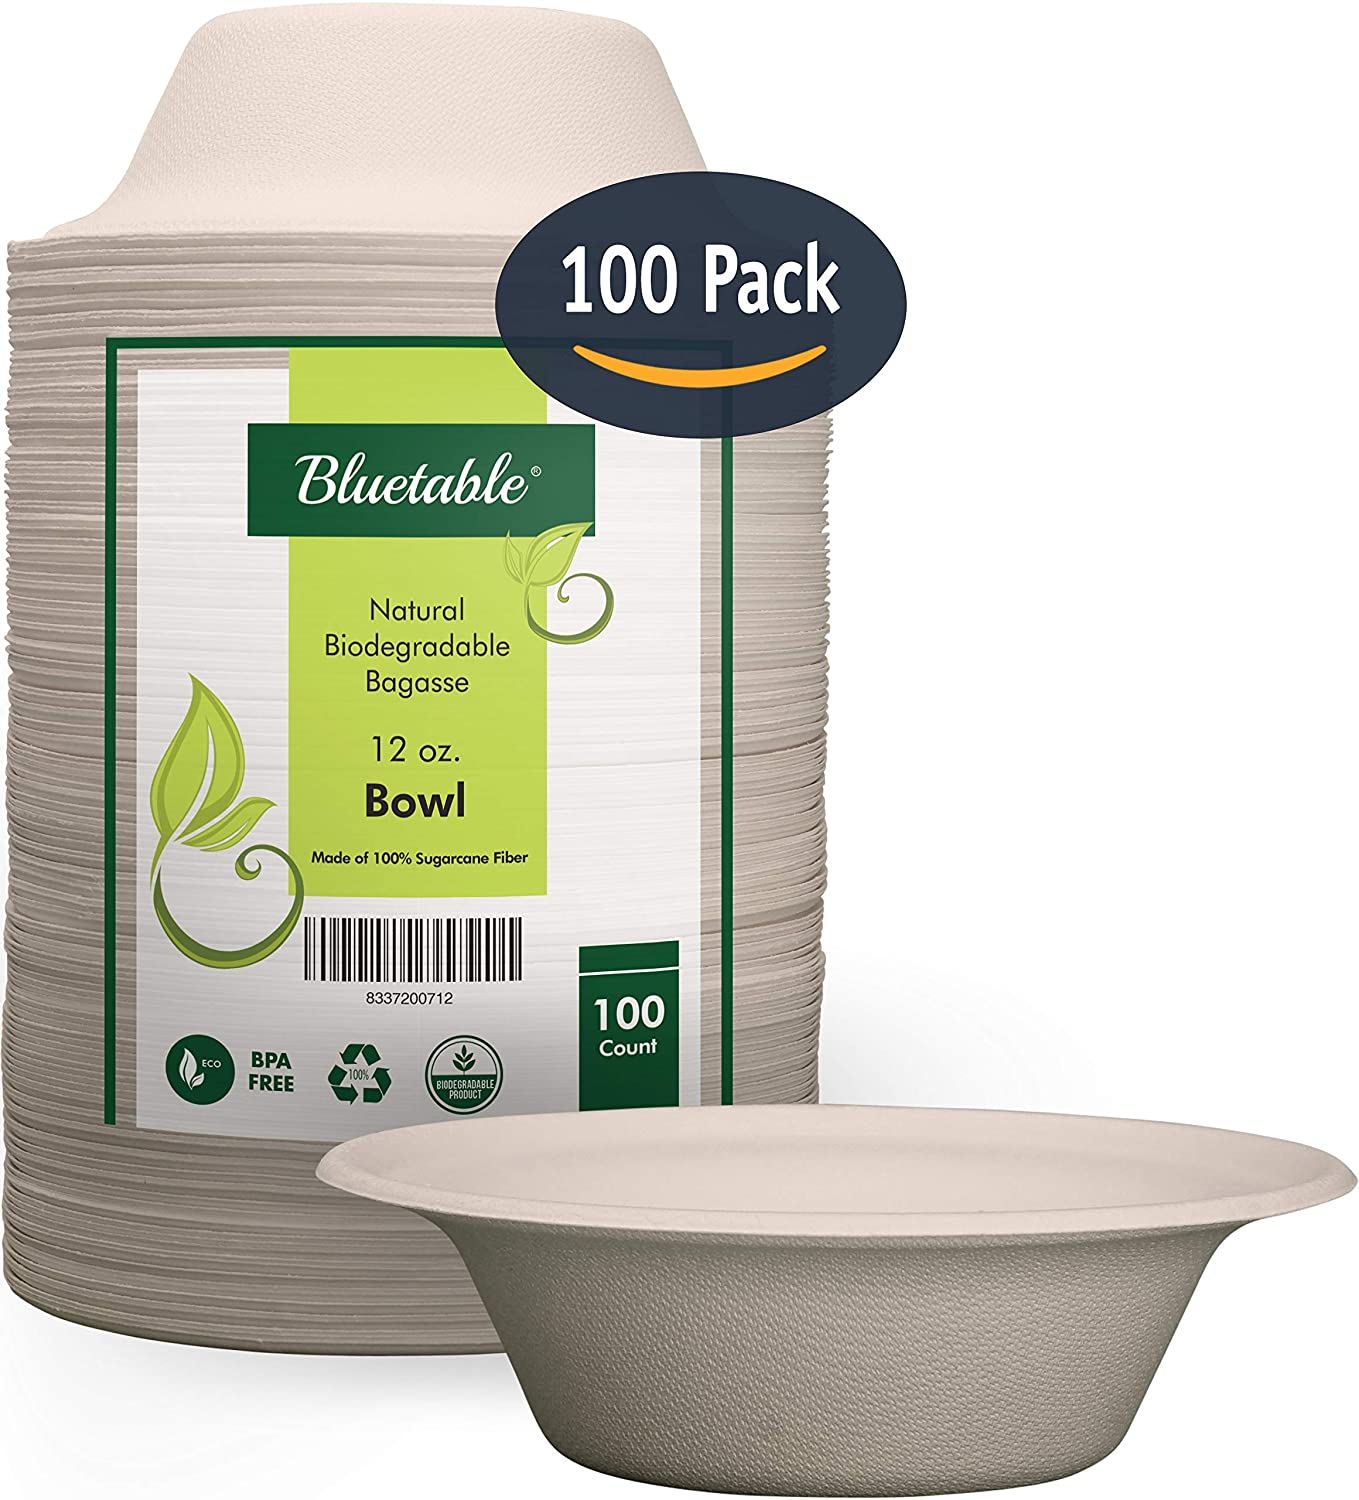 Compostable Bowls 12 Oz, Biodegradable Bowls – Made from 100% Sugarcane, Disposable Eco Friendly bagasse bowls, Natural Disposable Paper Bowls - by Bluetable [100 Pack]